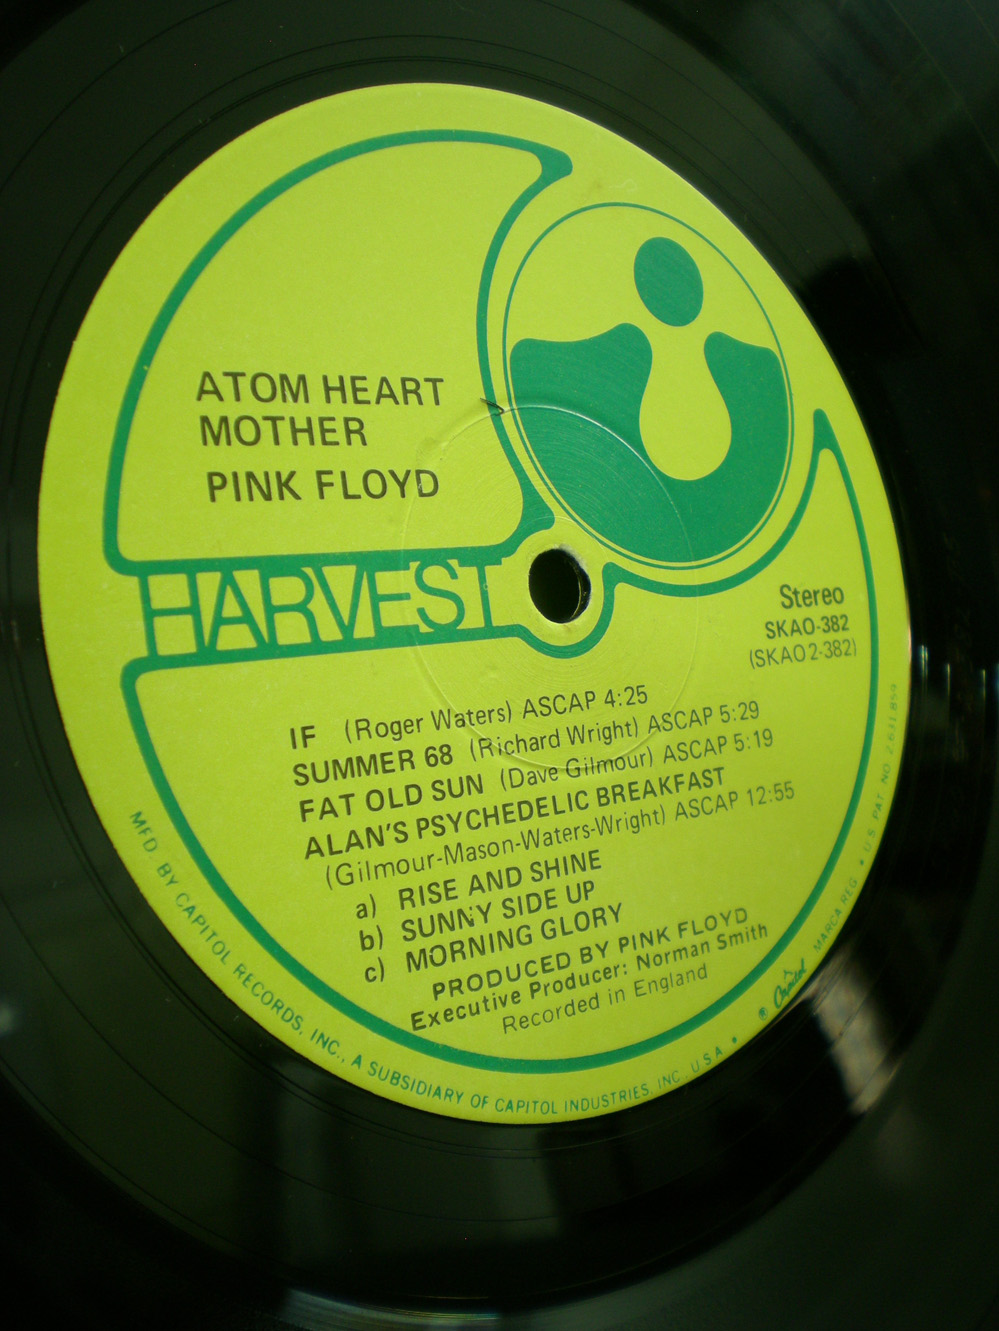 Heartbroken Mom Warns Others After 18 Year Old Daughter: WILL STARVE FOR PIANOS: Pink Floyd -Atom Heart Mother